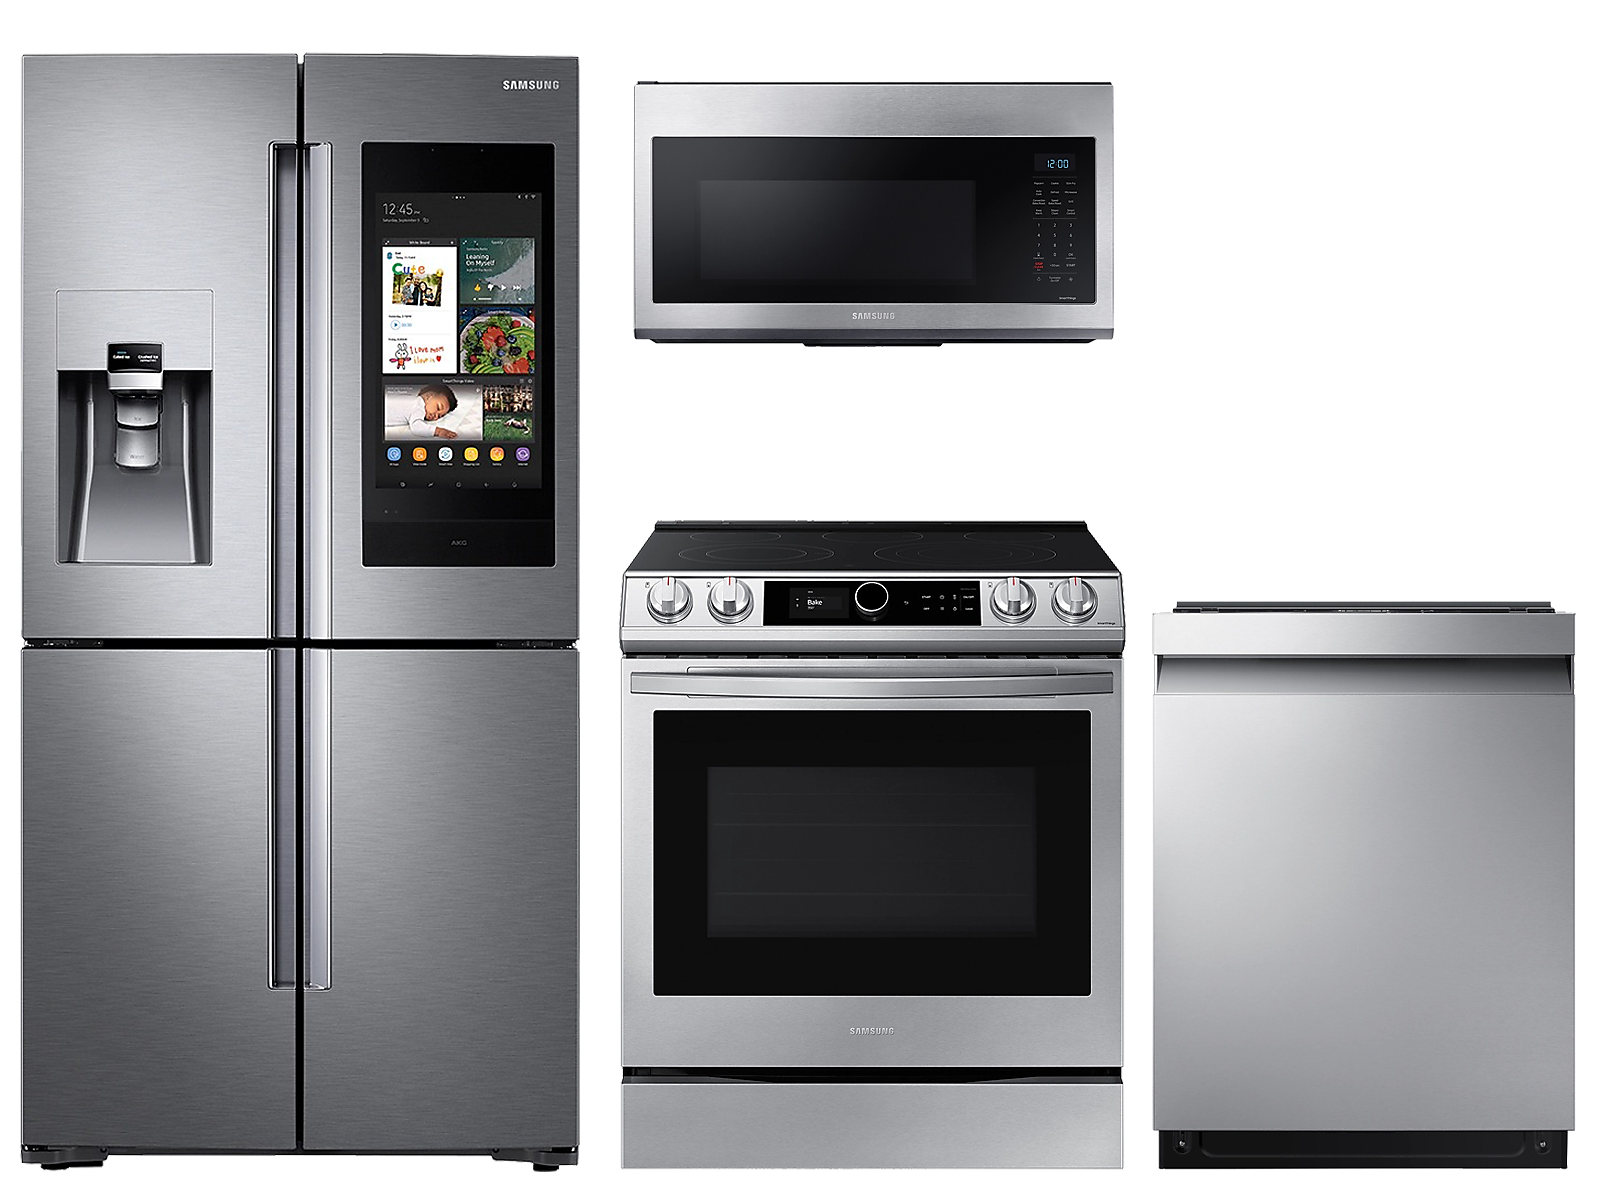 Samsung coupon: Samsung 22 cu. ft. Family HubTM counter depth 4-door refrigerator, 6.3 cu. ft. electric range, microwave and 42 dBA dishwasher package